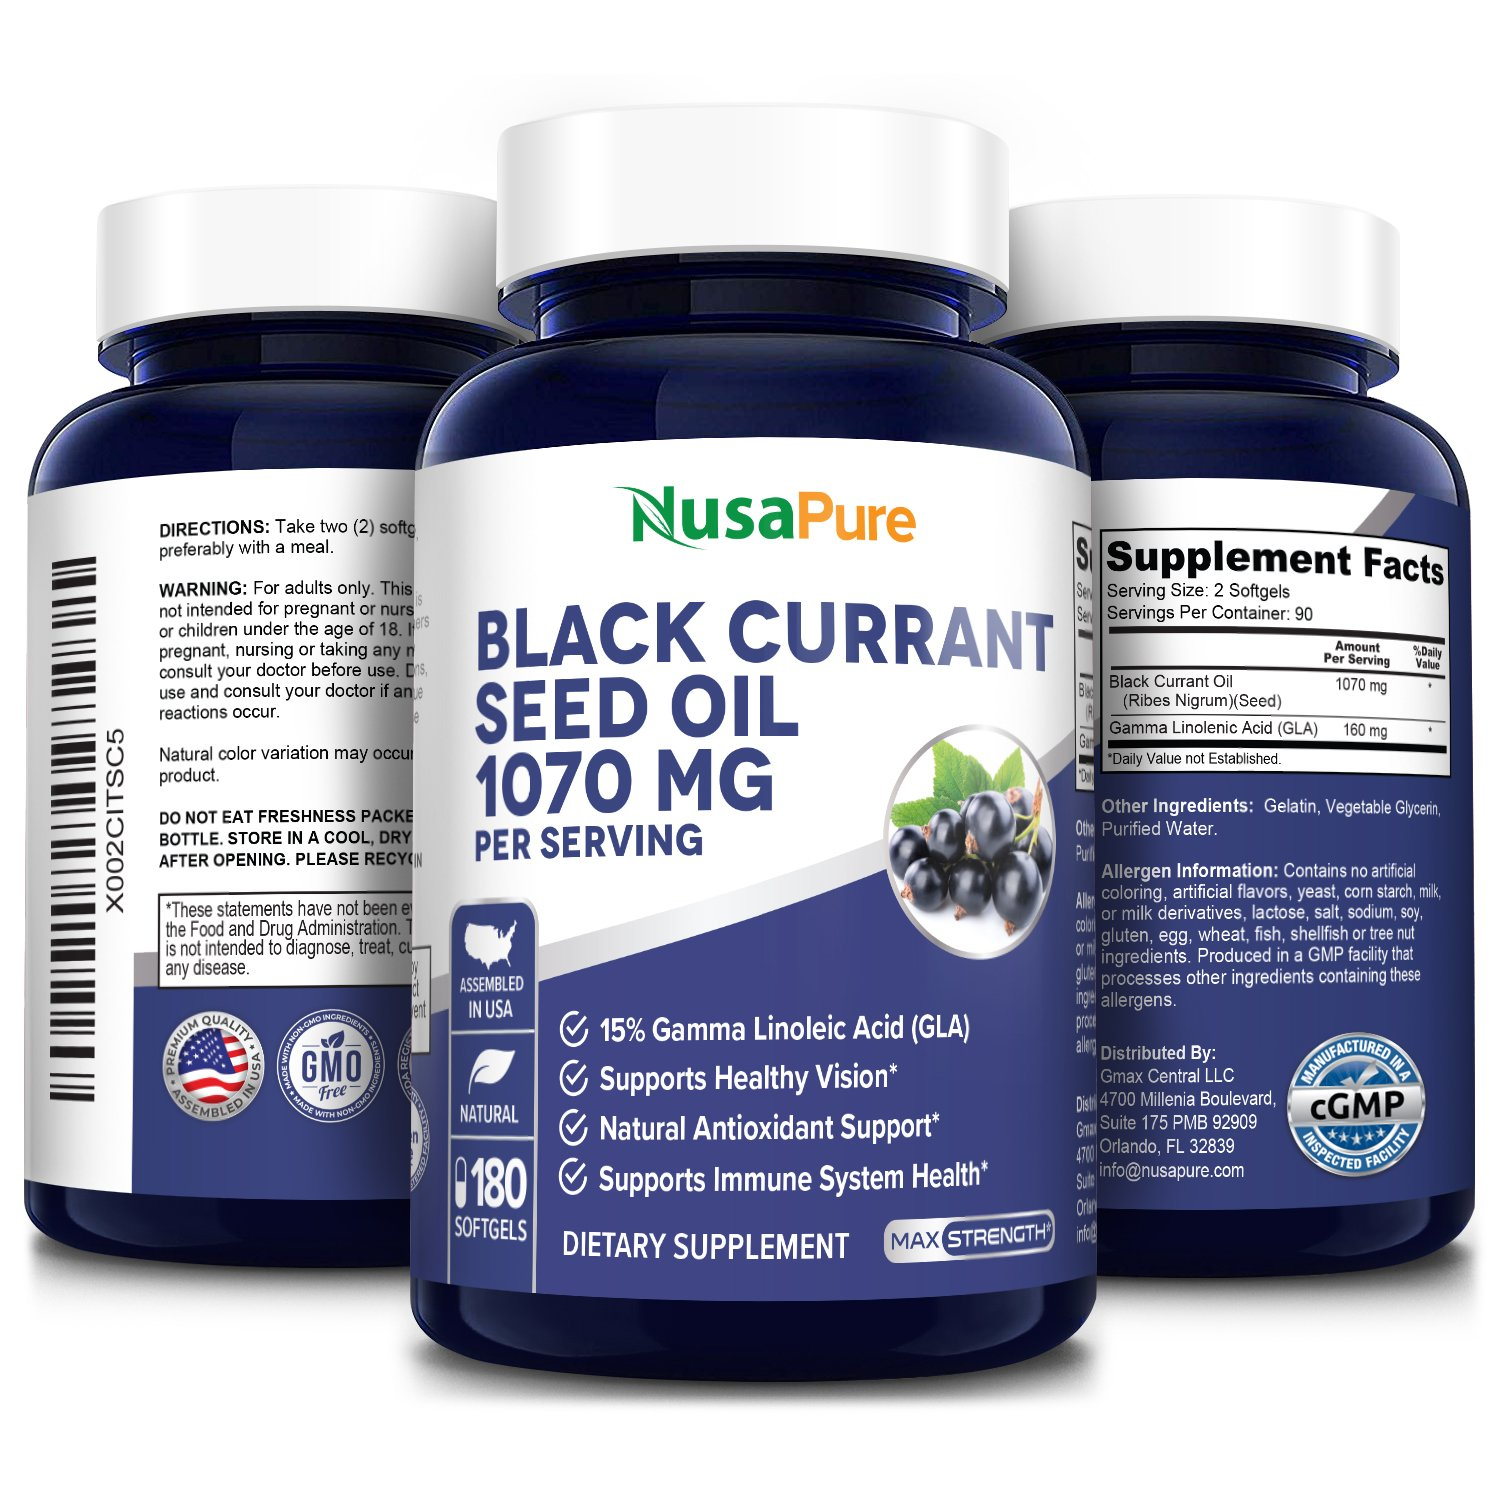 Black Currant seed Oil 1070 Mg with 15% GLA - 180 softgels (Non-GMO and Gluten-free)